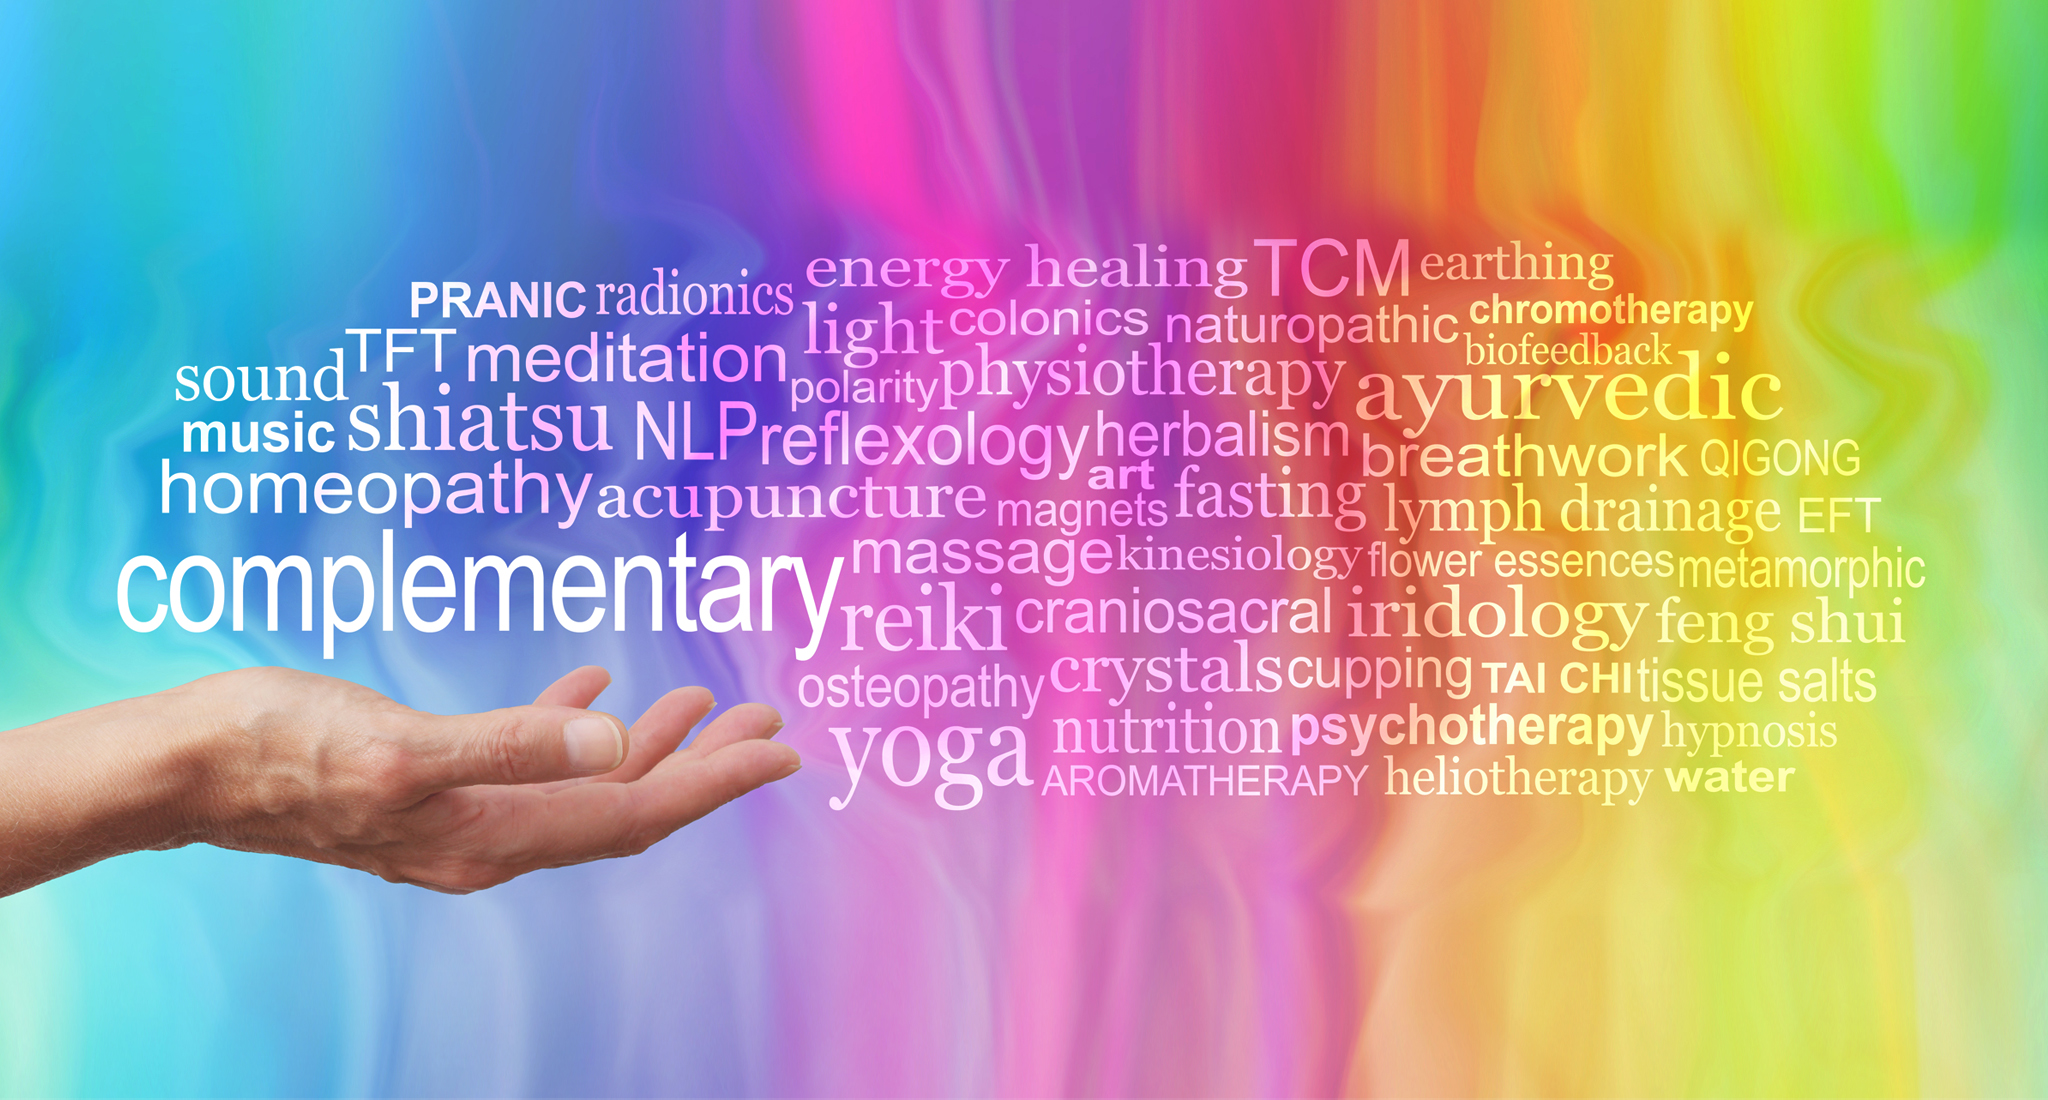 Complementary therapies for reducing pain in cancer patients